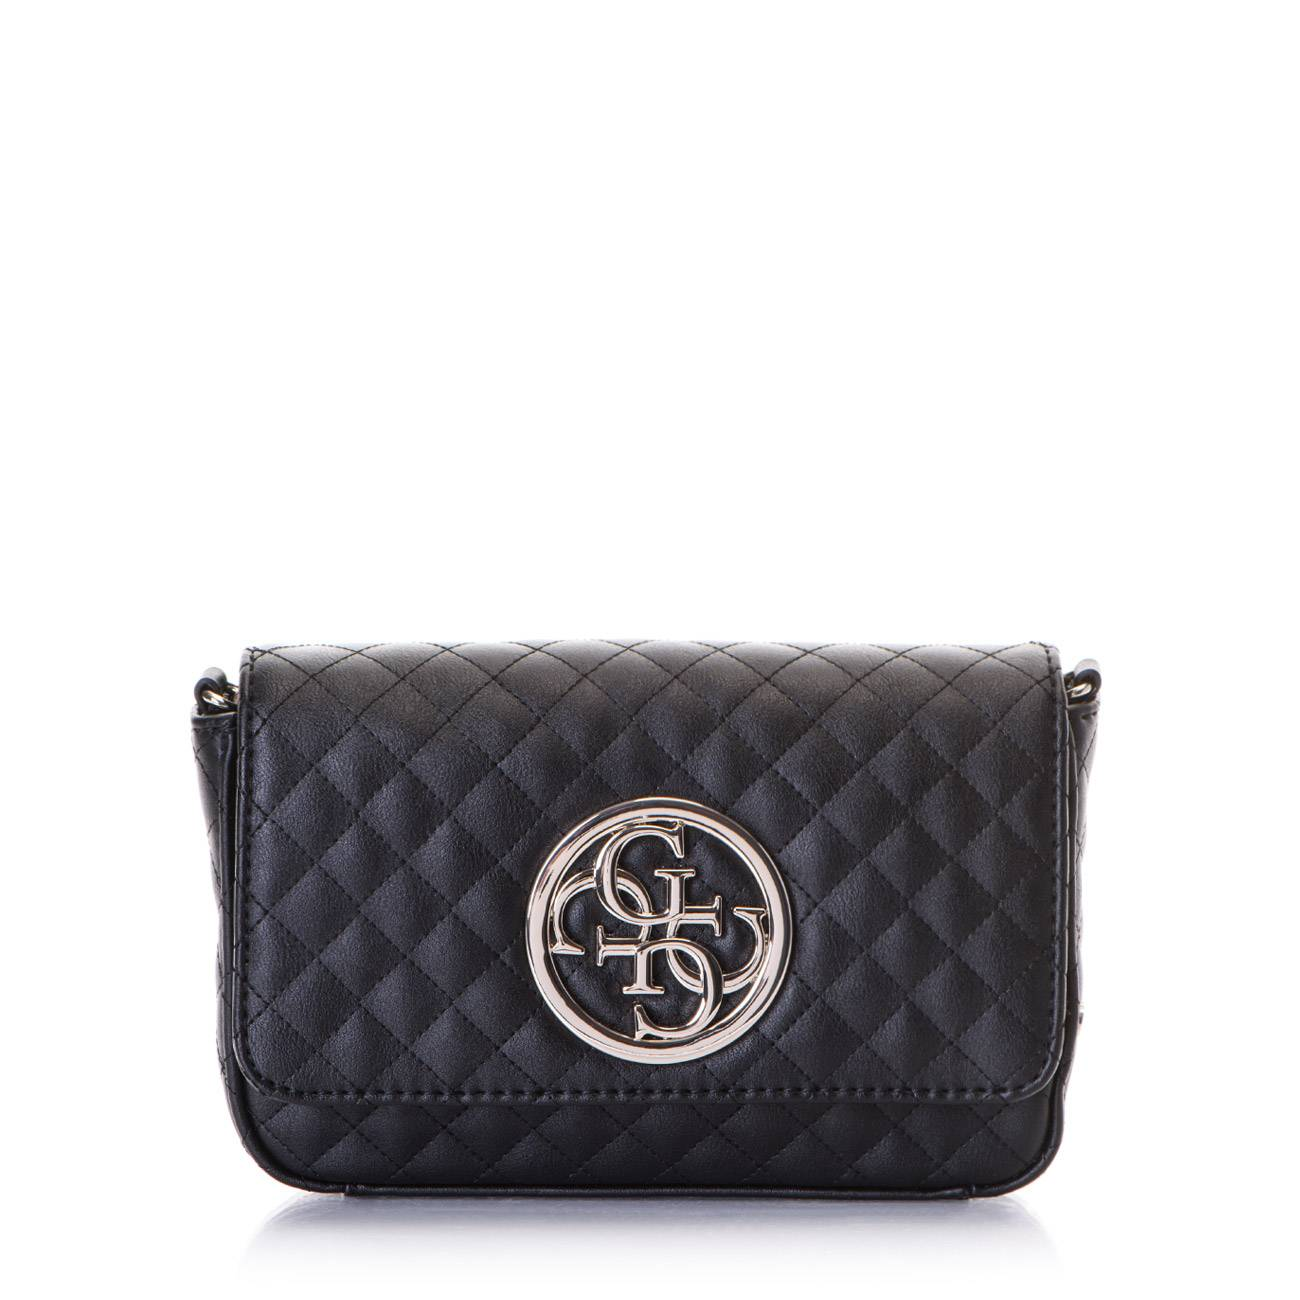 G LUX QUILTED